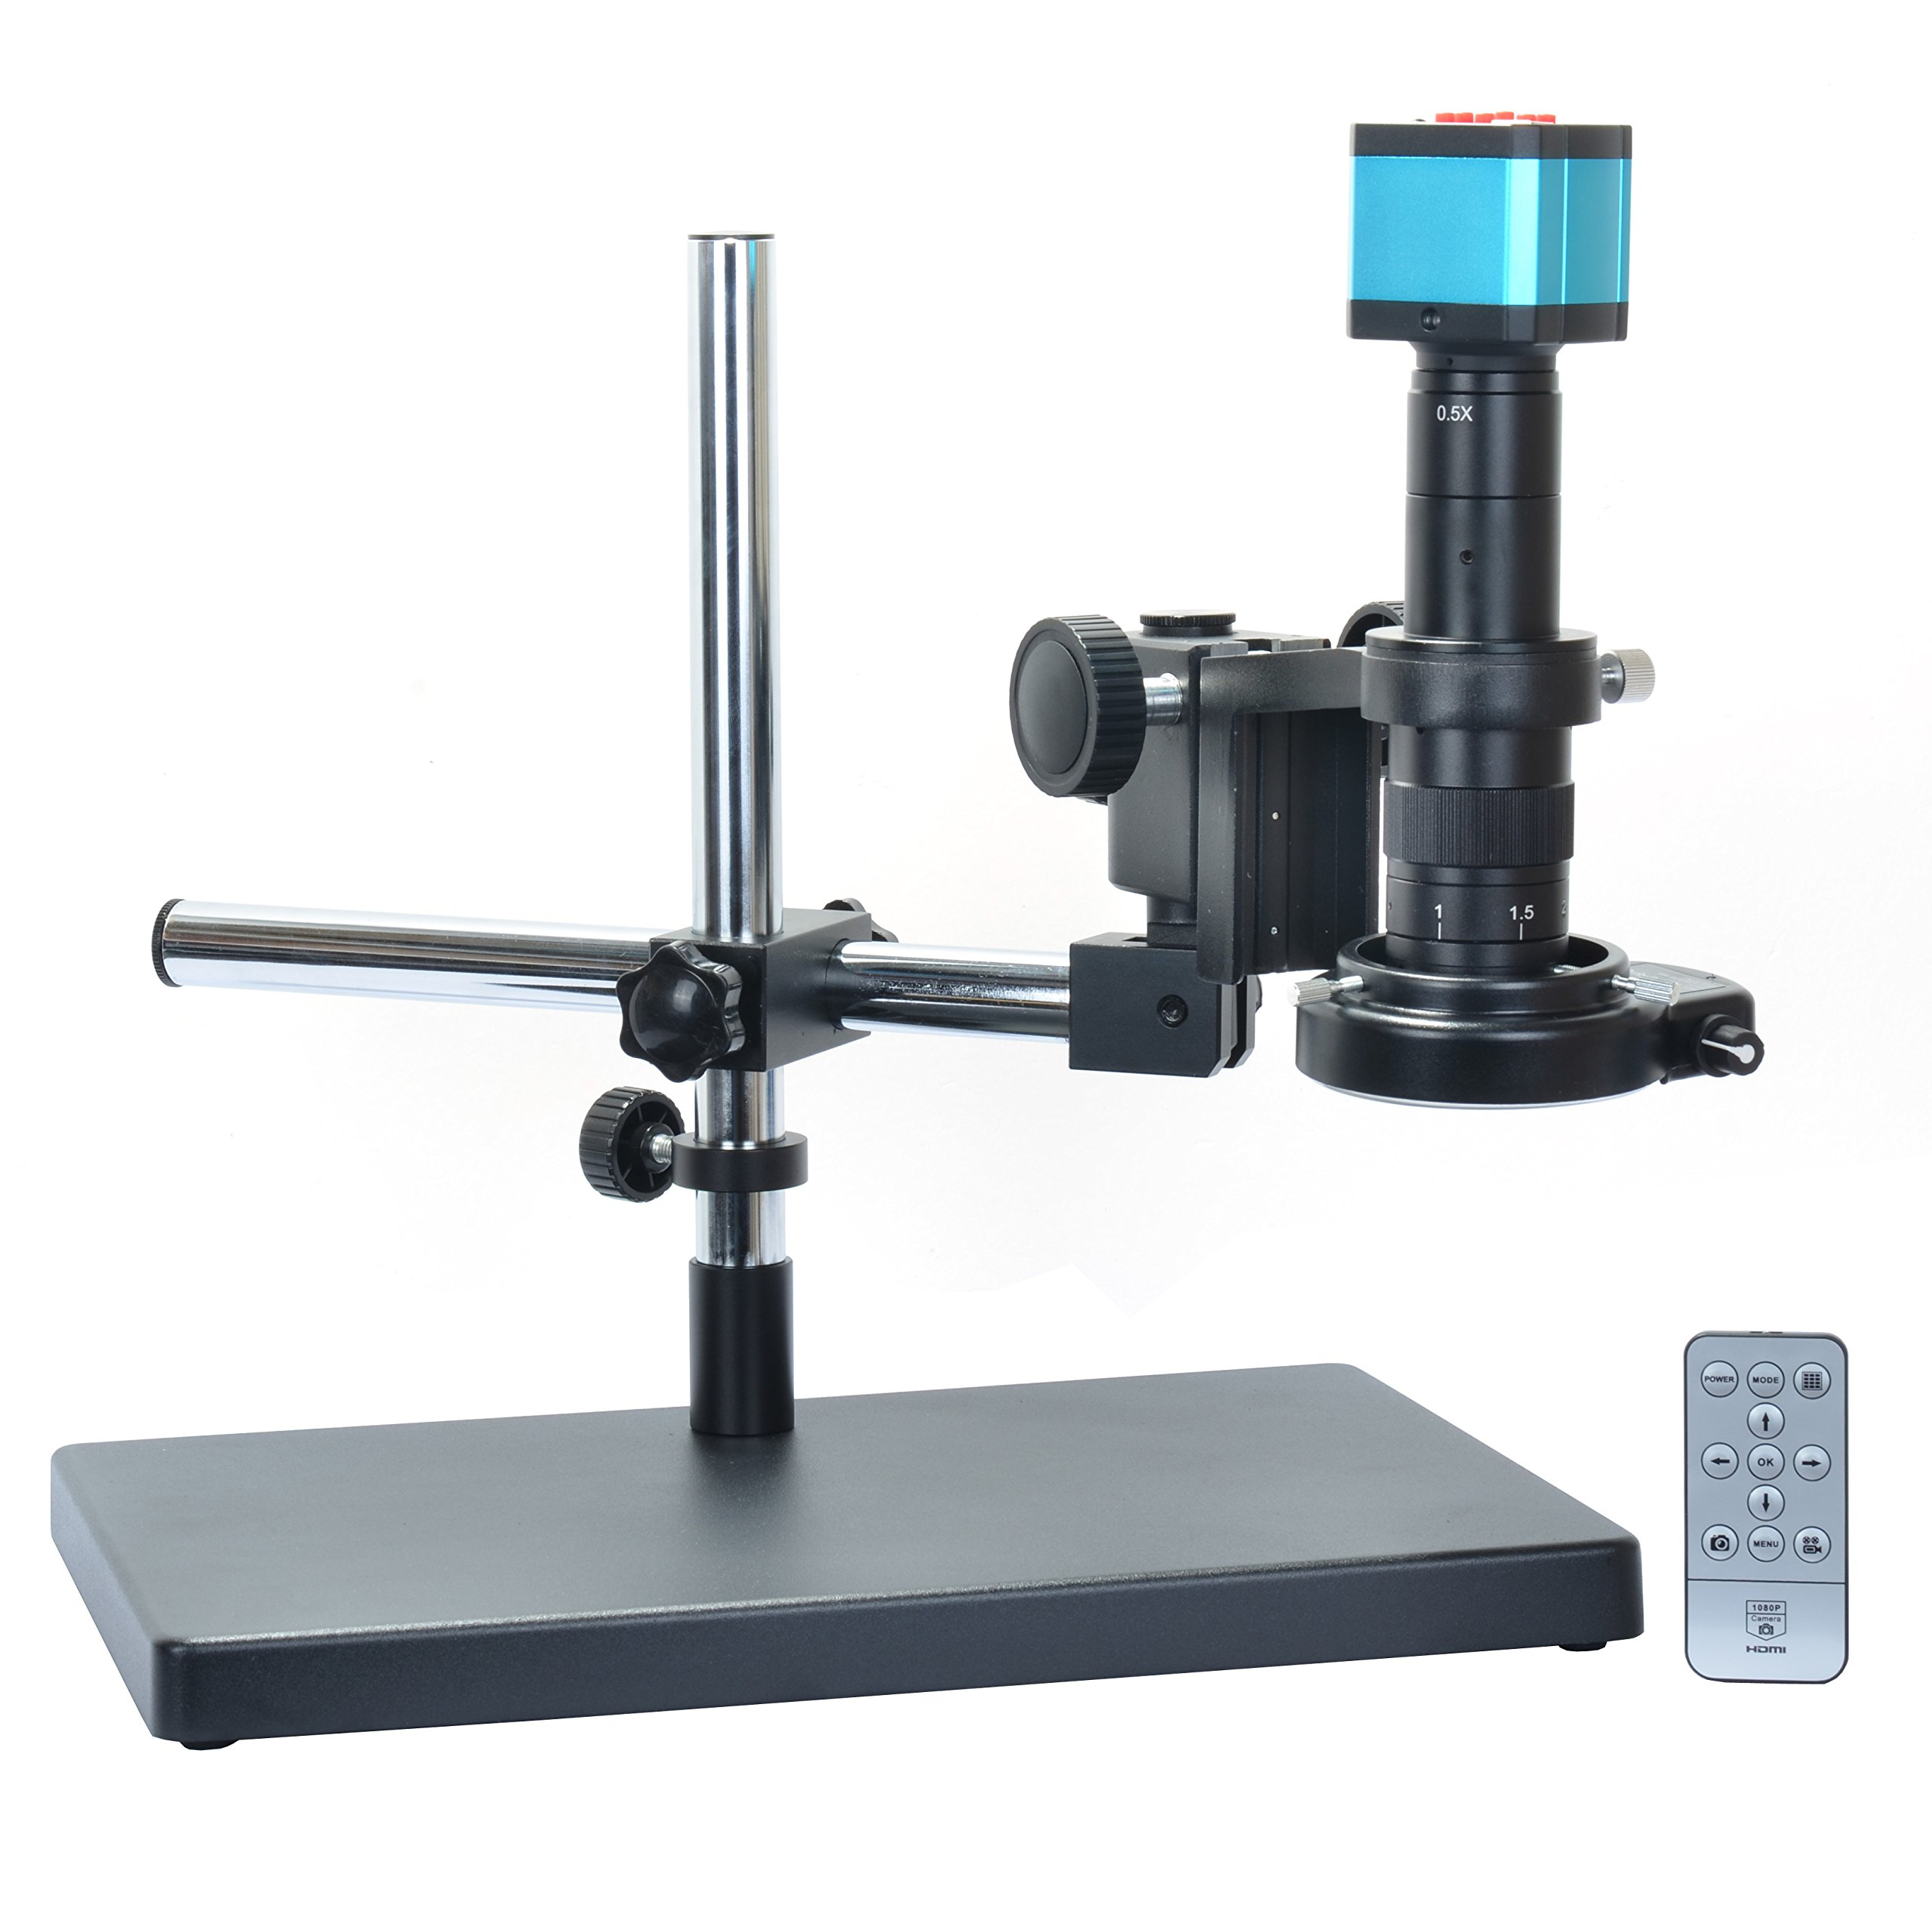 14MP HDMI Microscope Camera Kit For Industry Lab PCB USB Output TF Card Video Recorder +180X C-mount Lens + Big Stereo Stand +144 LED Light by Aihome